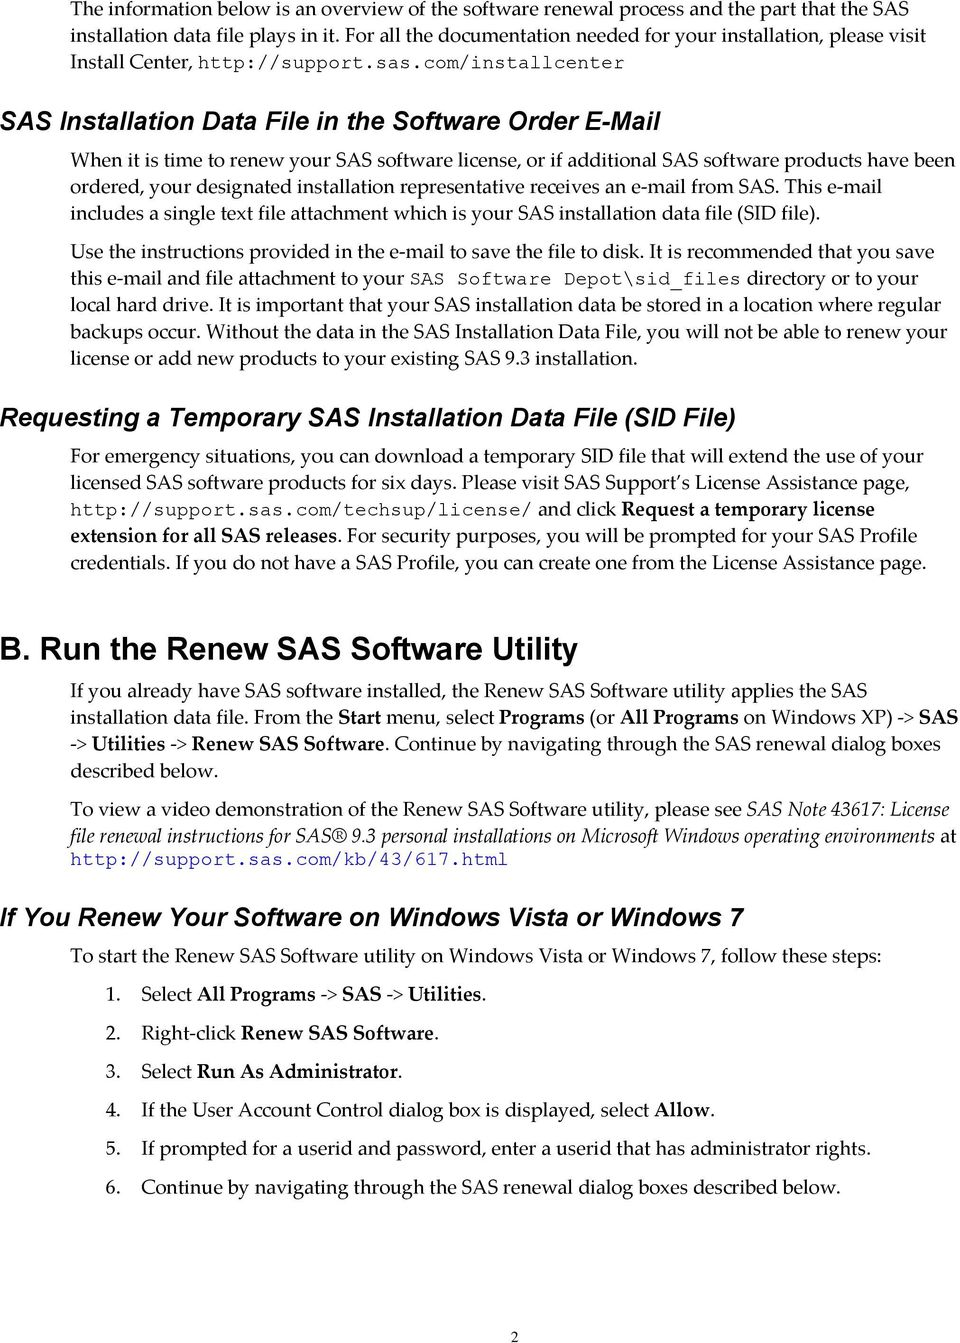 com/installcenter SAS Installation Data File in the Software Order E-Mail When it is time to renew your SAS software license, or if additional SAS software products have been ordered, your designated